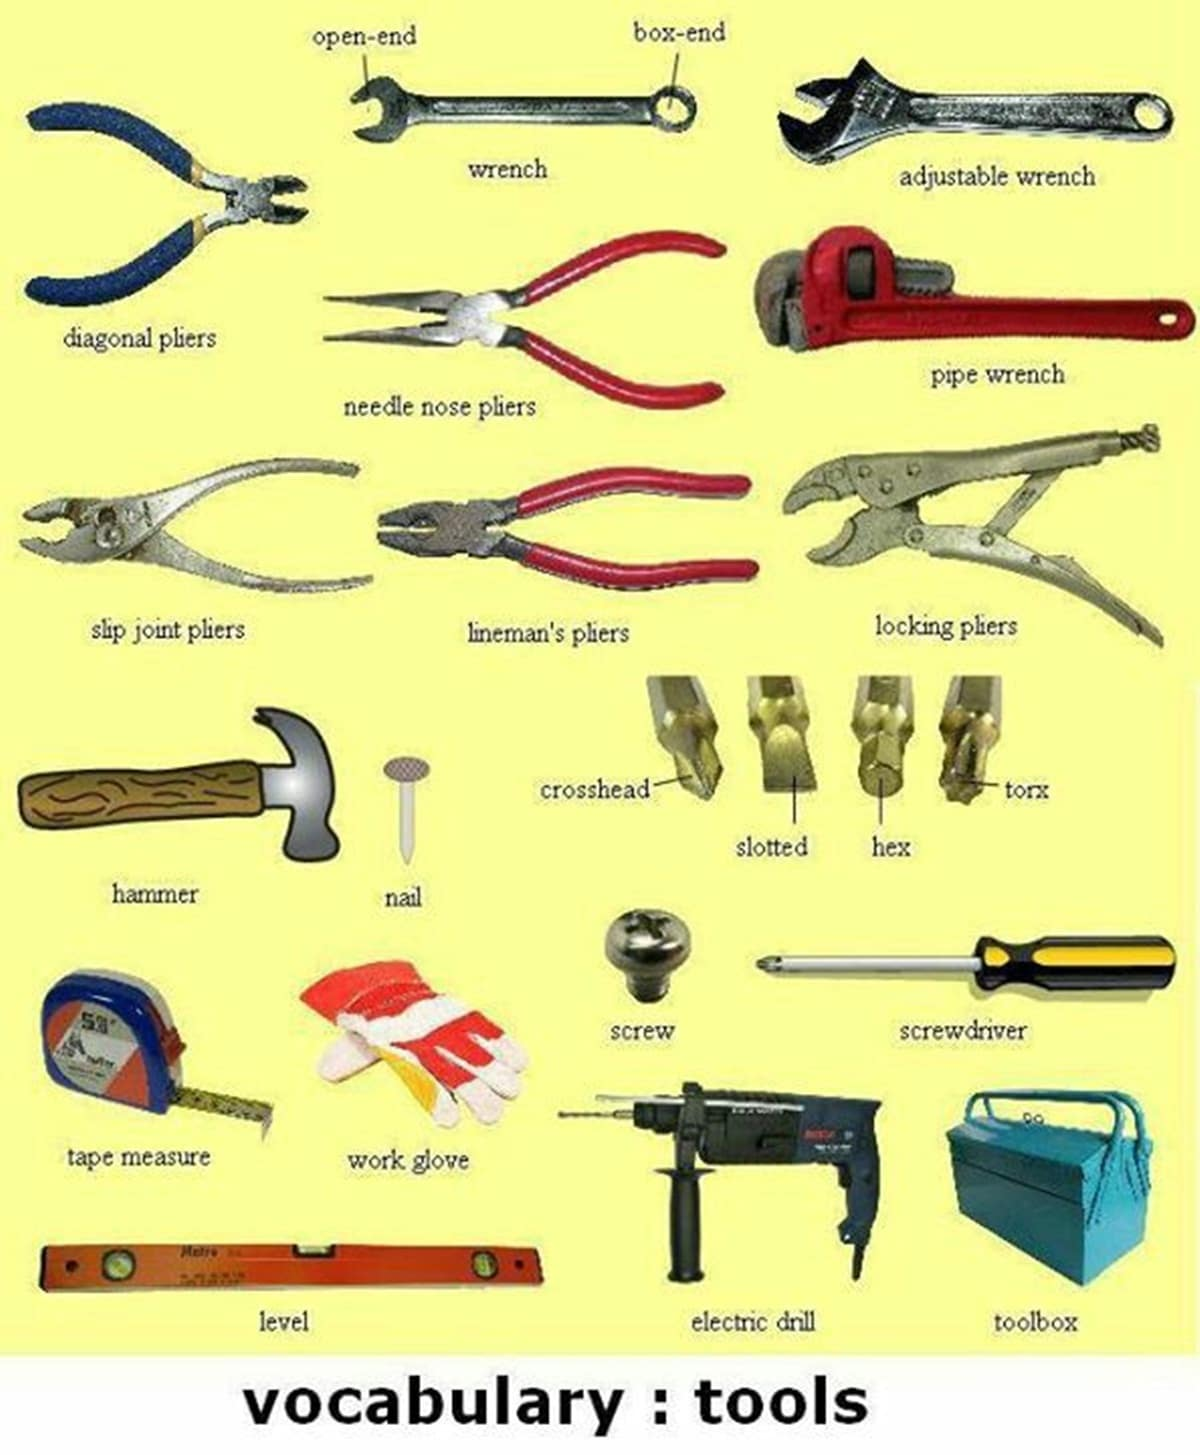 Tools and Equipment Vocabulary: 150+ Items Illustrated 1